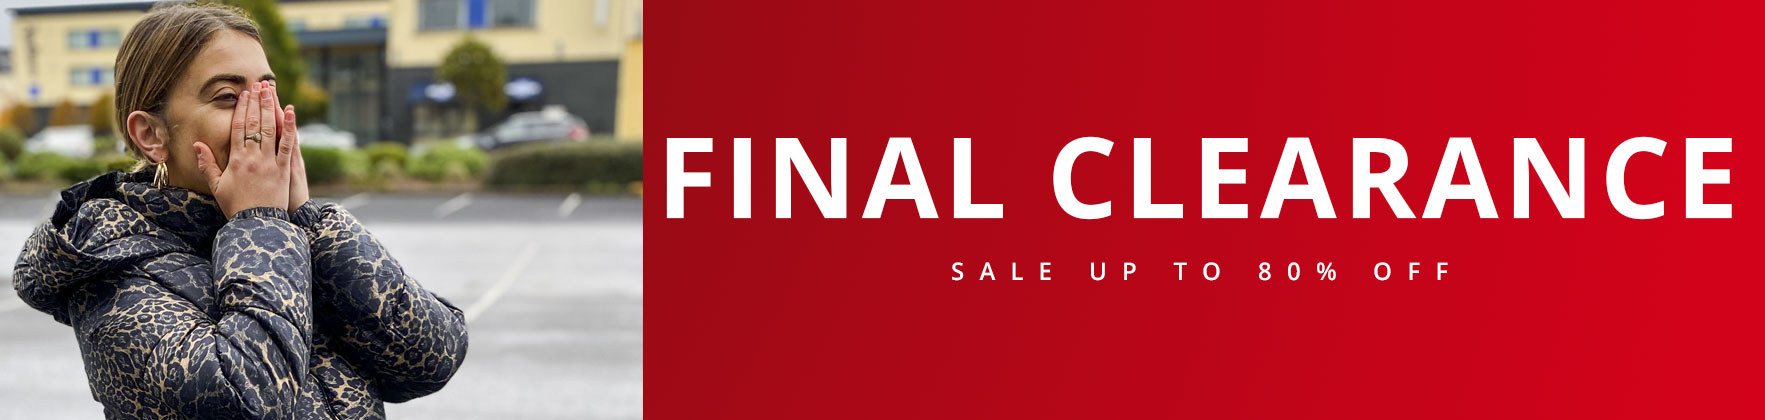 Women's Final Clearance Sale up to 80% OFF- Clothing, Trainers, Boots, Jackets, Dresses and more up to 70% off